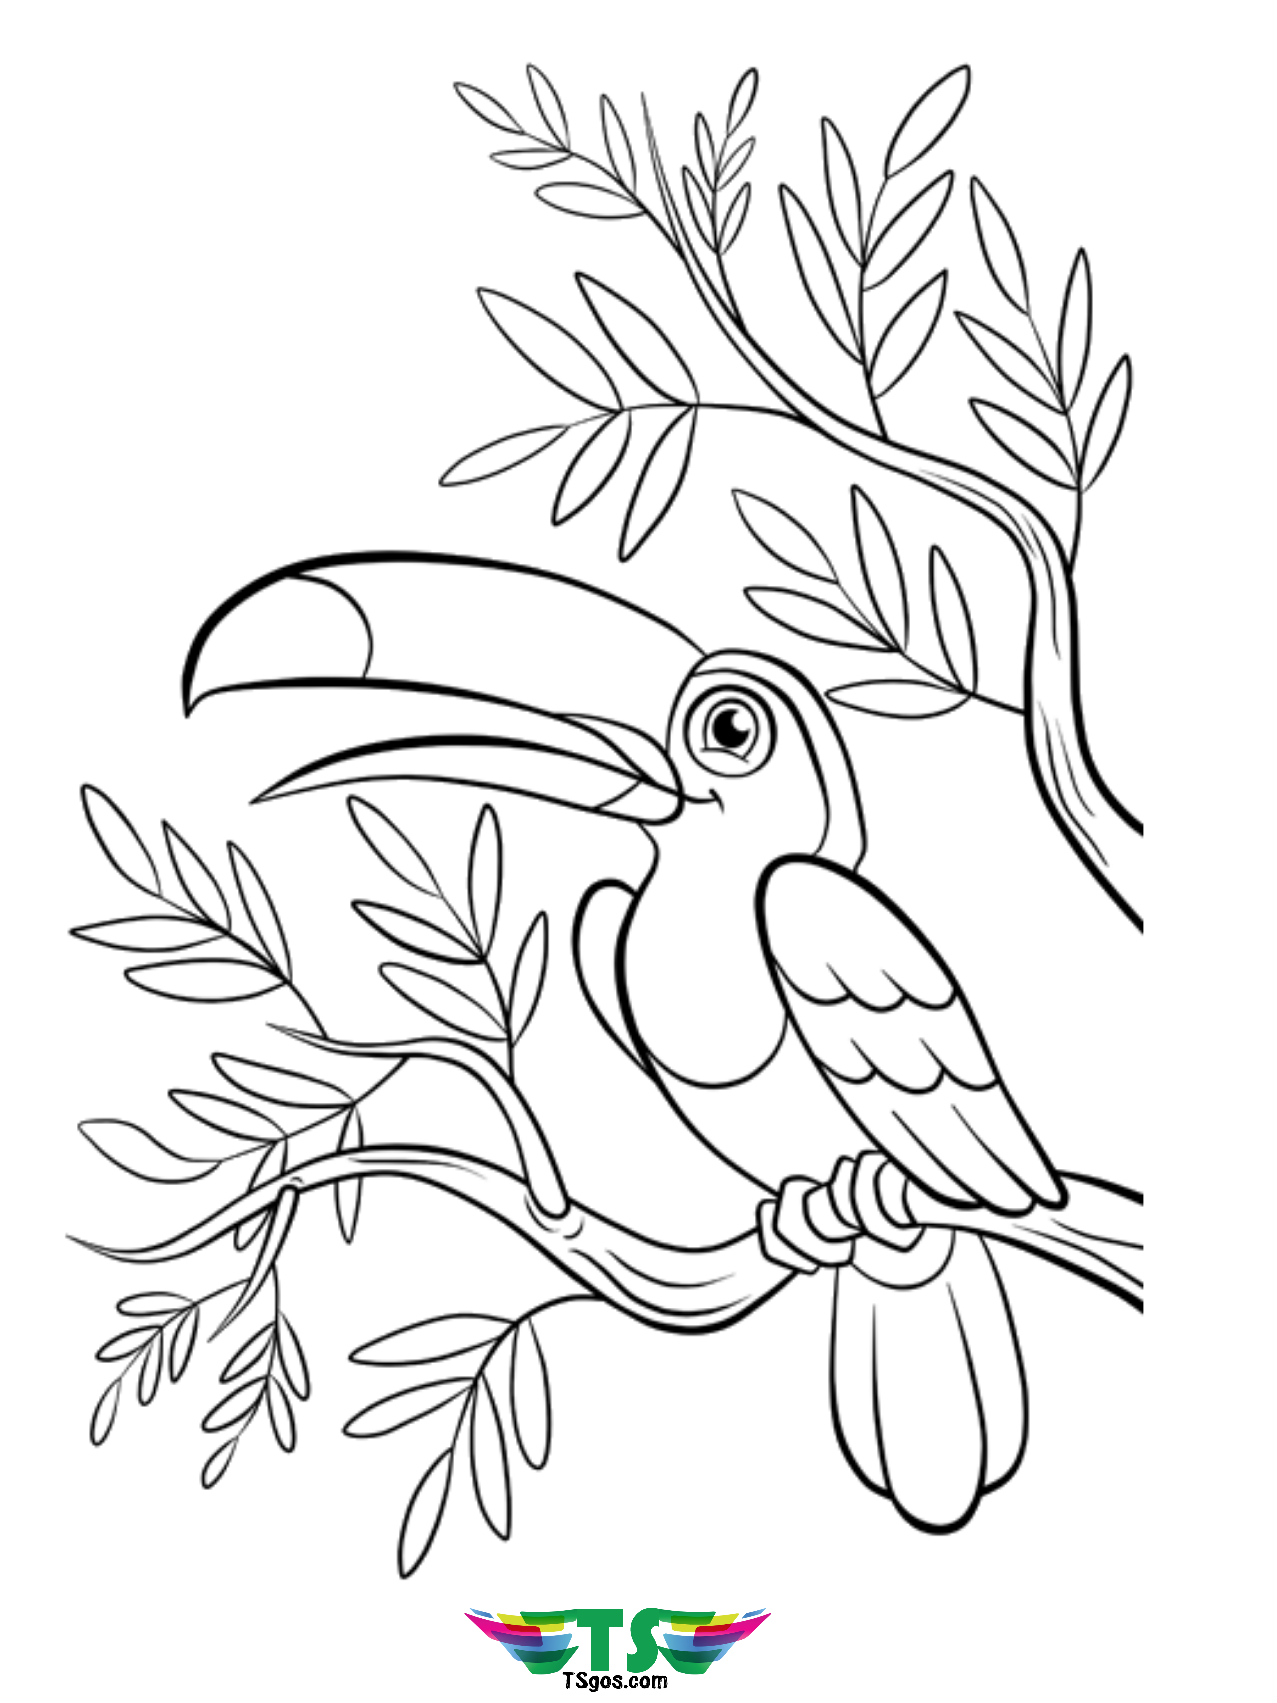 coloring birds for kids 12 best free printable bird coloring pages for kids kids birds coloring for